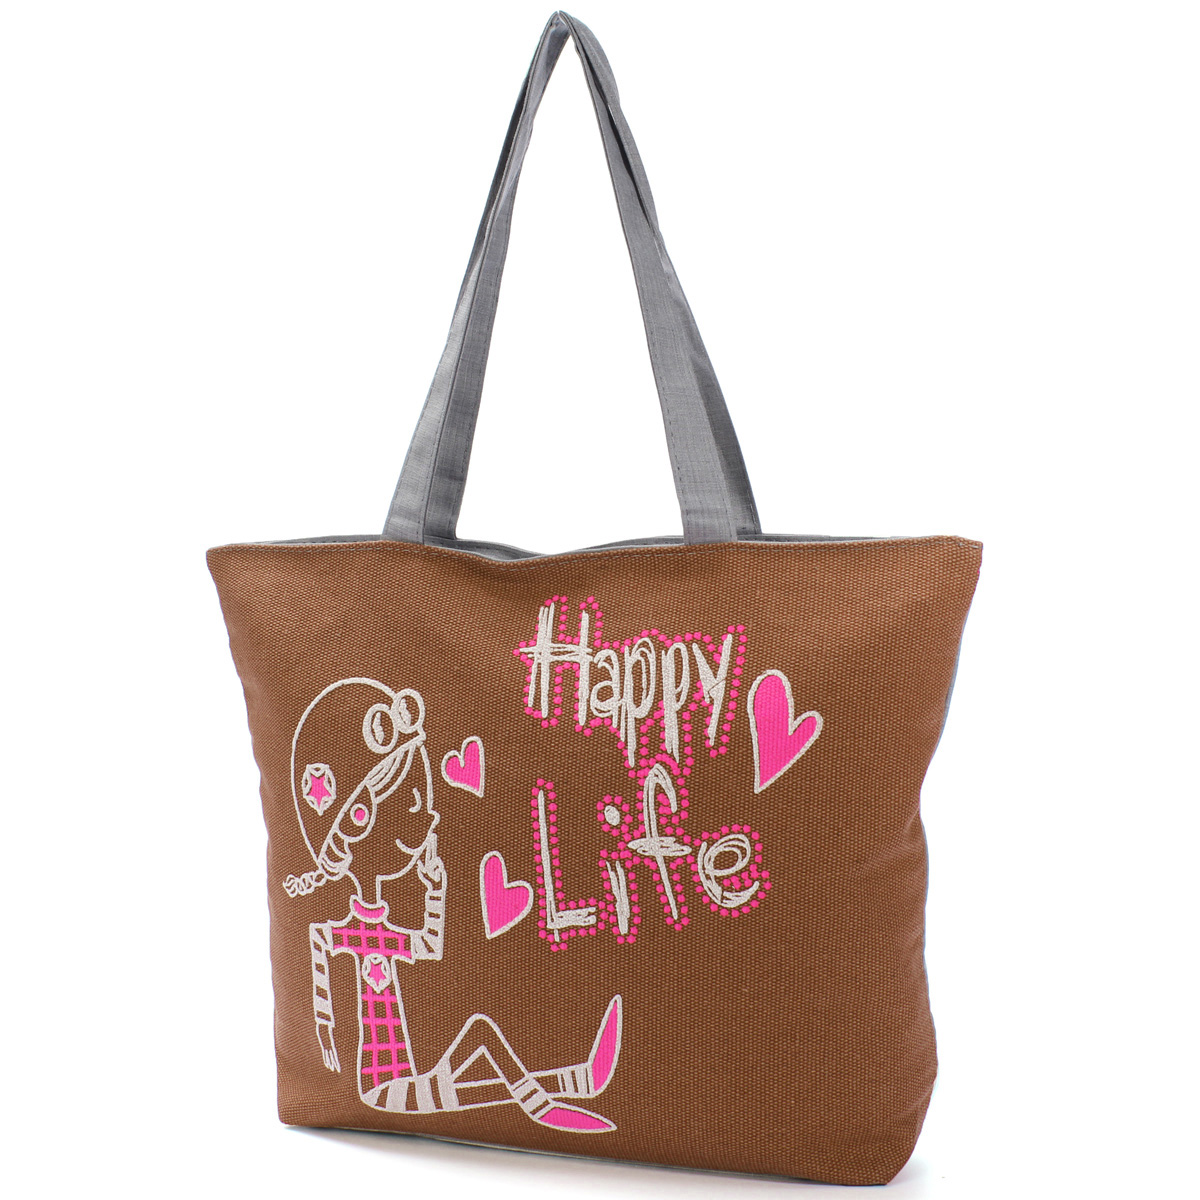 Women ladies canvas beach shoulder bag holiday tote